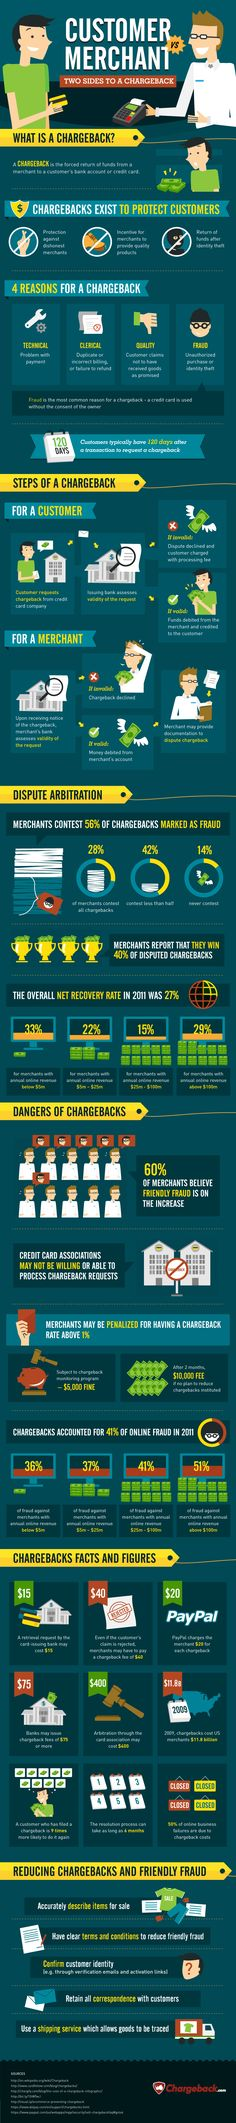 Merchant Vs. Customer: The Two Sides to a Chargeback